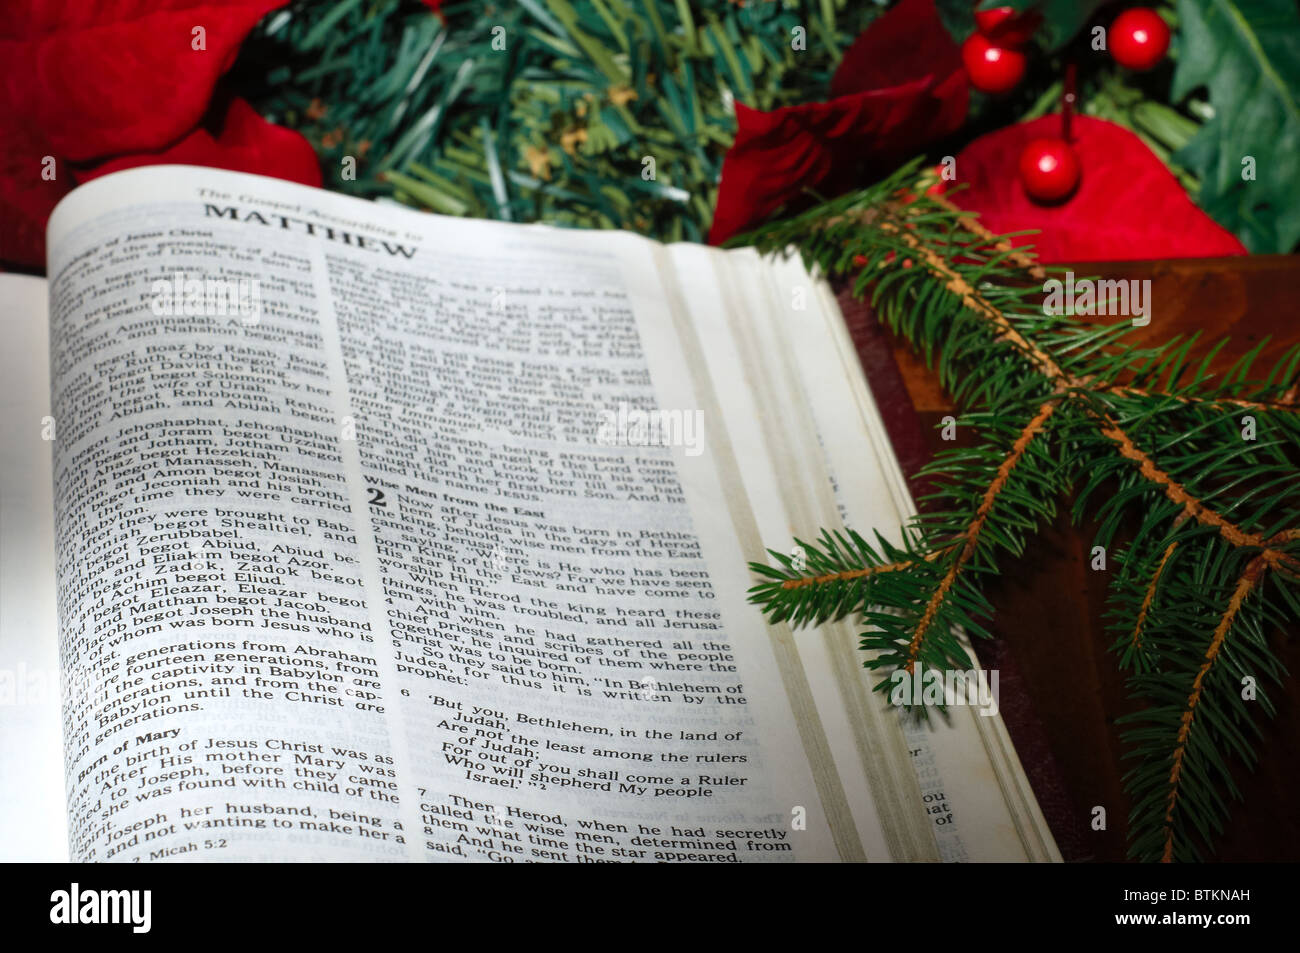 Christmas Bible Stock Photos & Christmas Bible Stock Images - Alamy